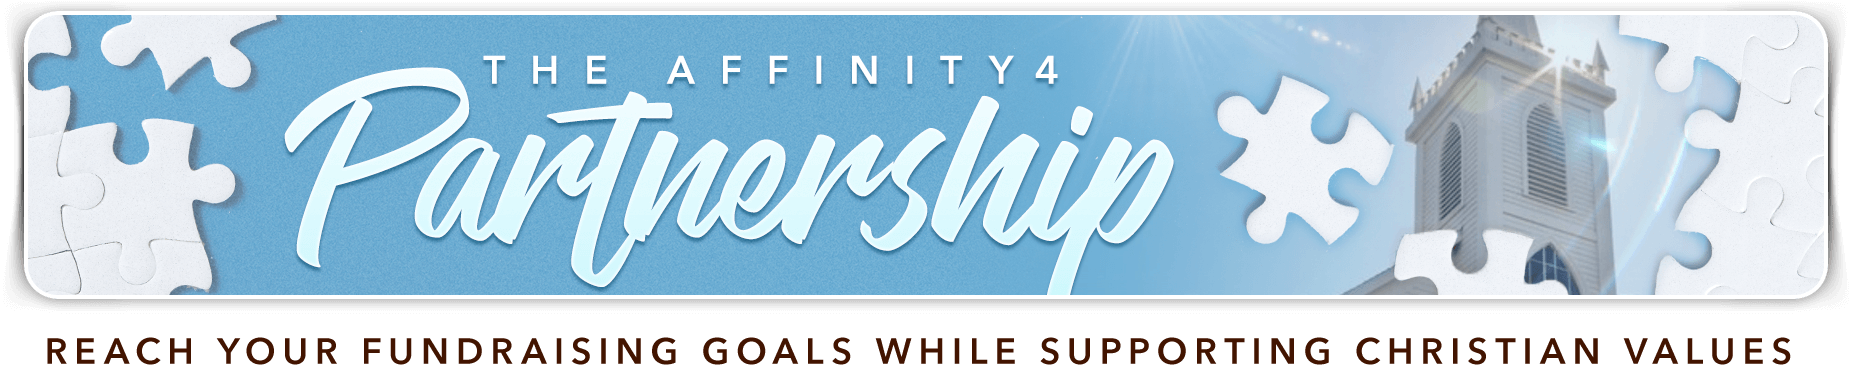 The Affinity4 Partnership